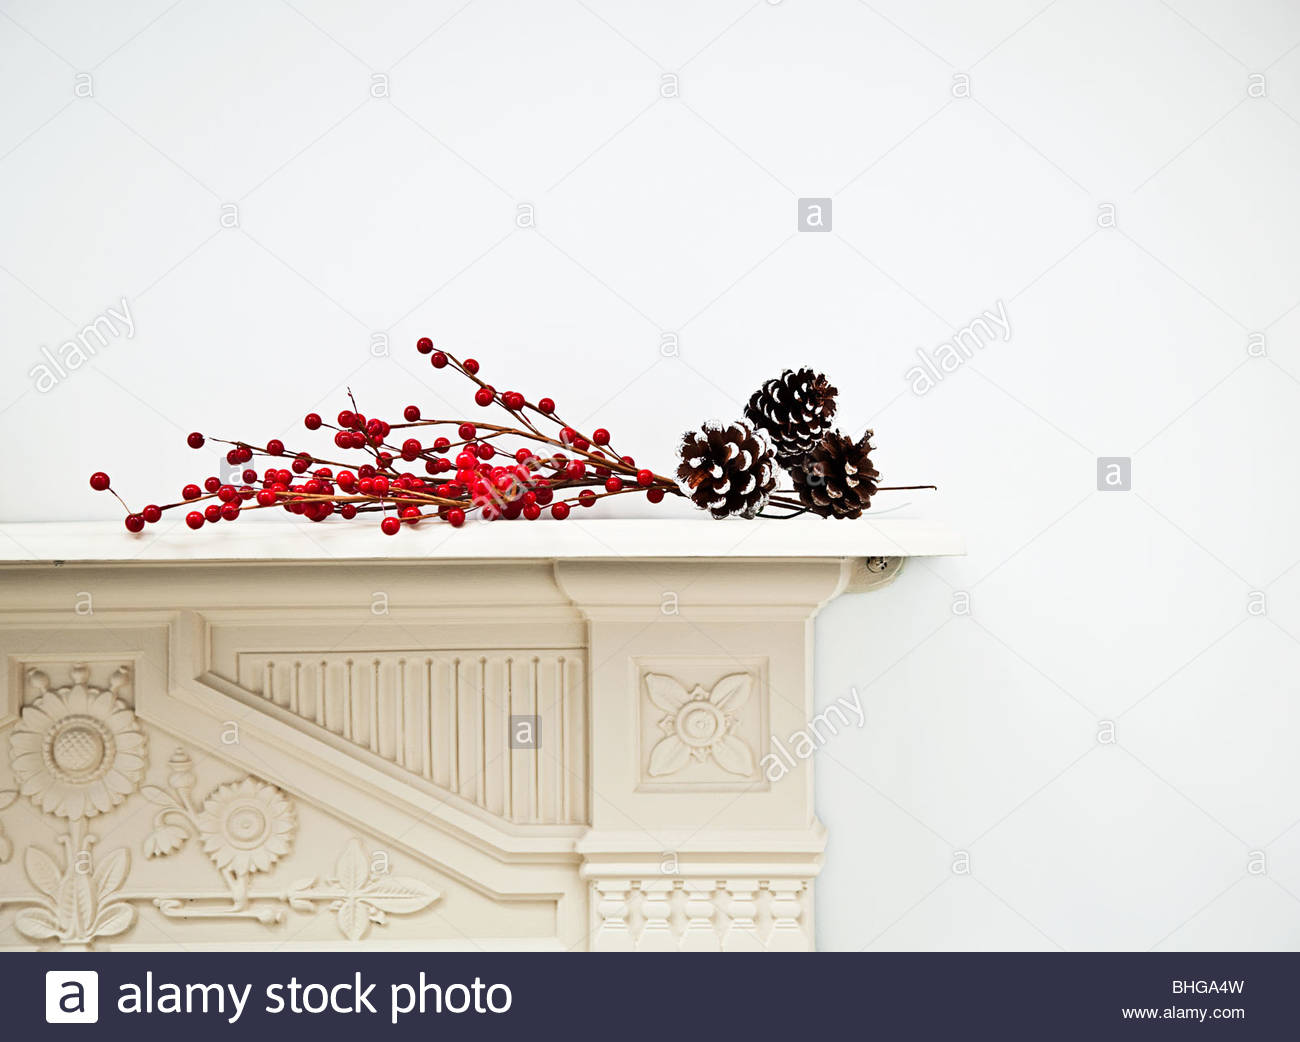 Festive decoration on mantlepiece - Stock Image